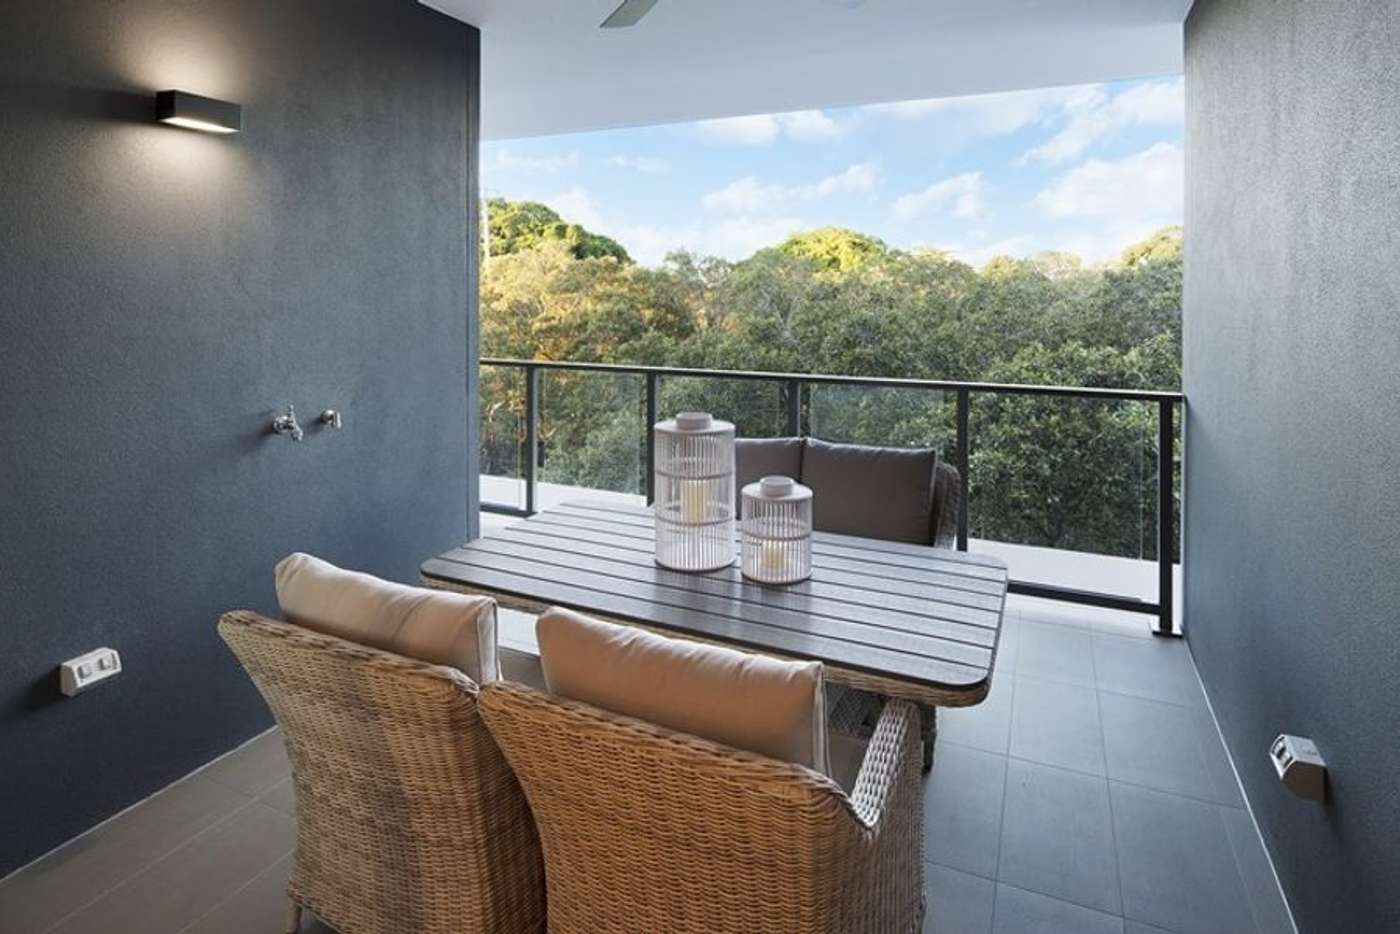 Sixth view of Homely unit listing, 5310/331 MacArthur Avenue, Hamilton QLD 4007